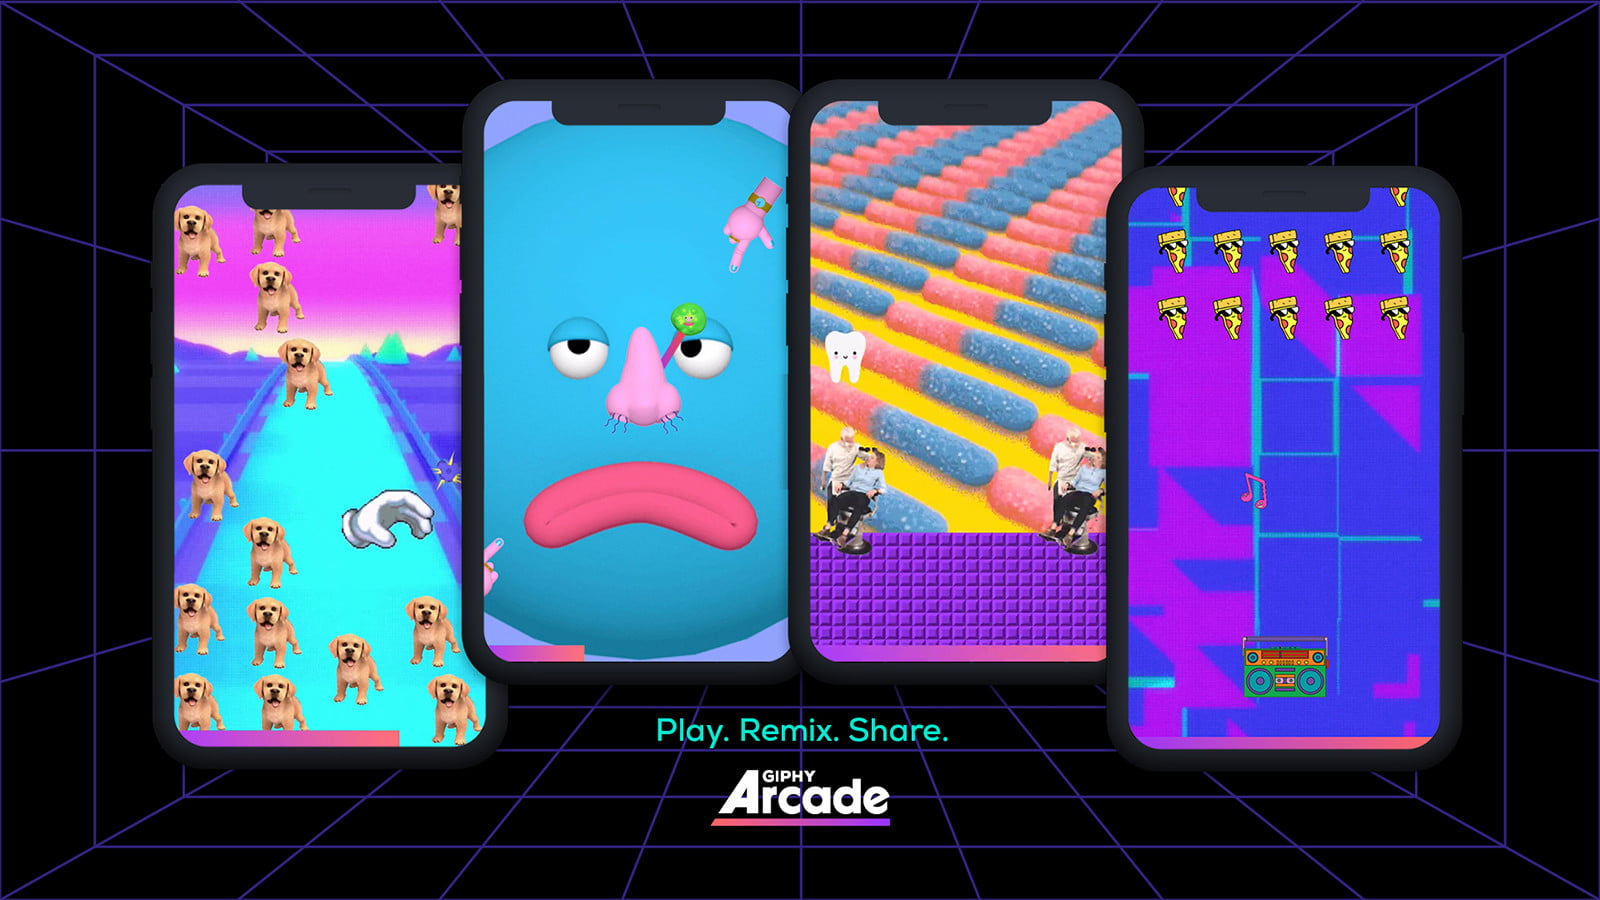 giphy arcade launches gametypes v6